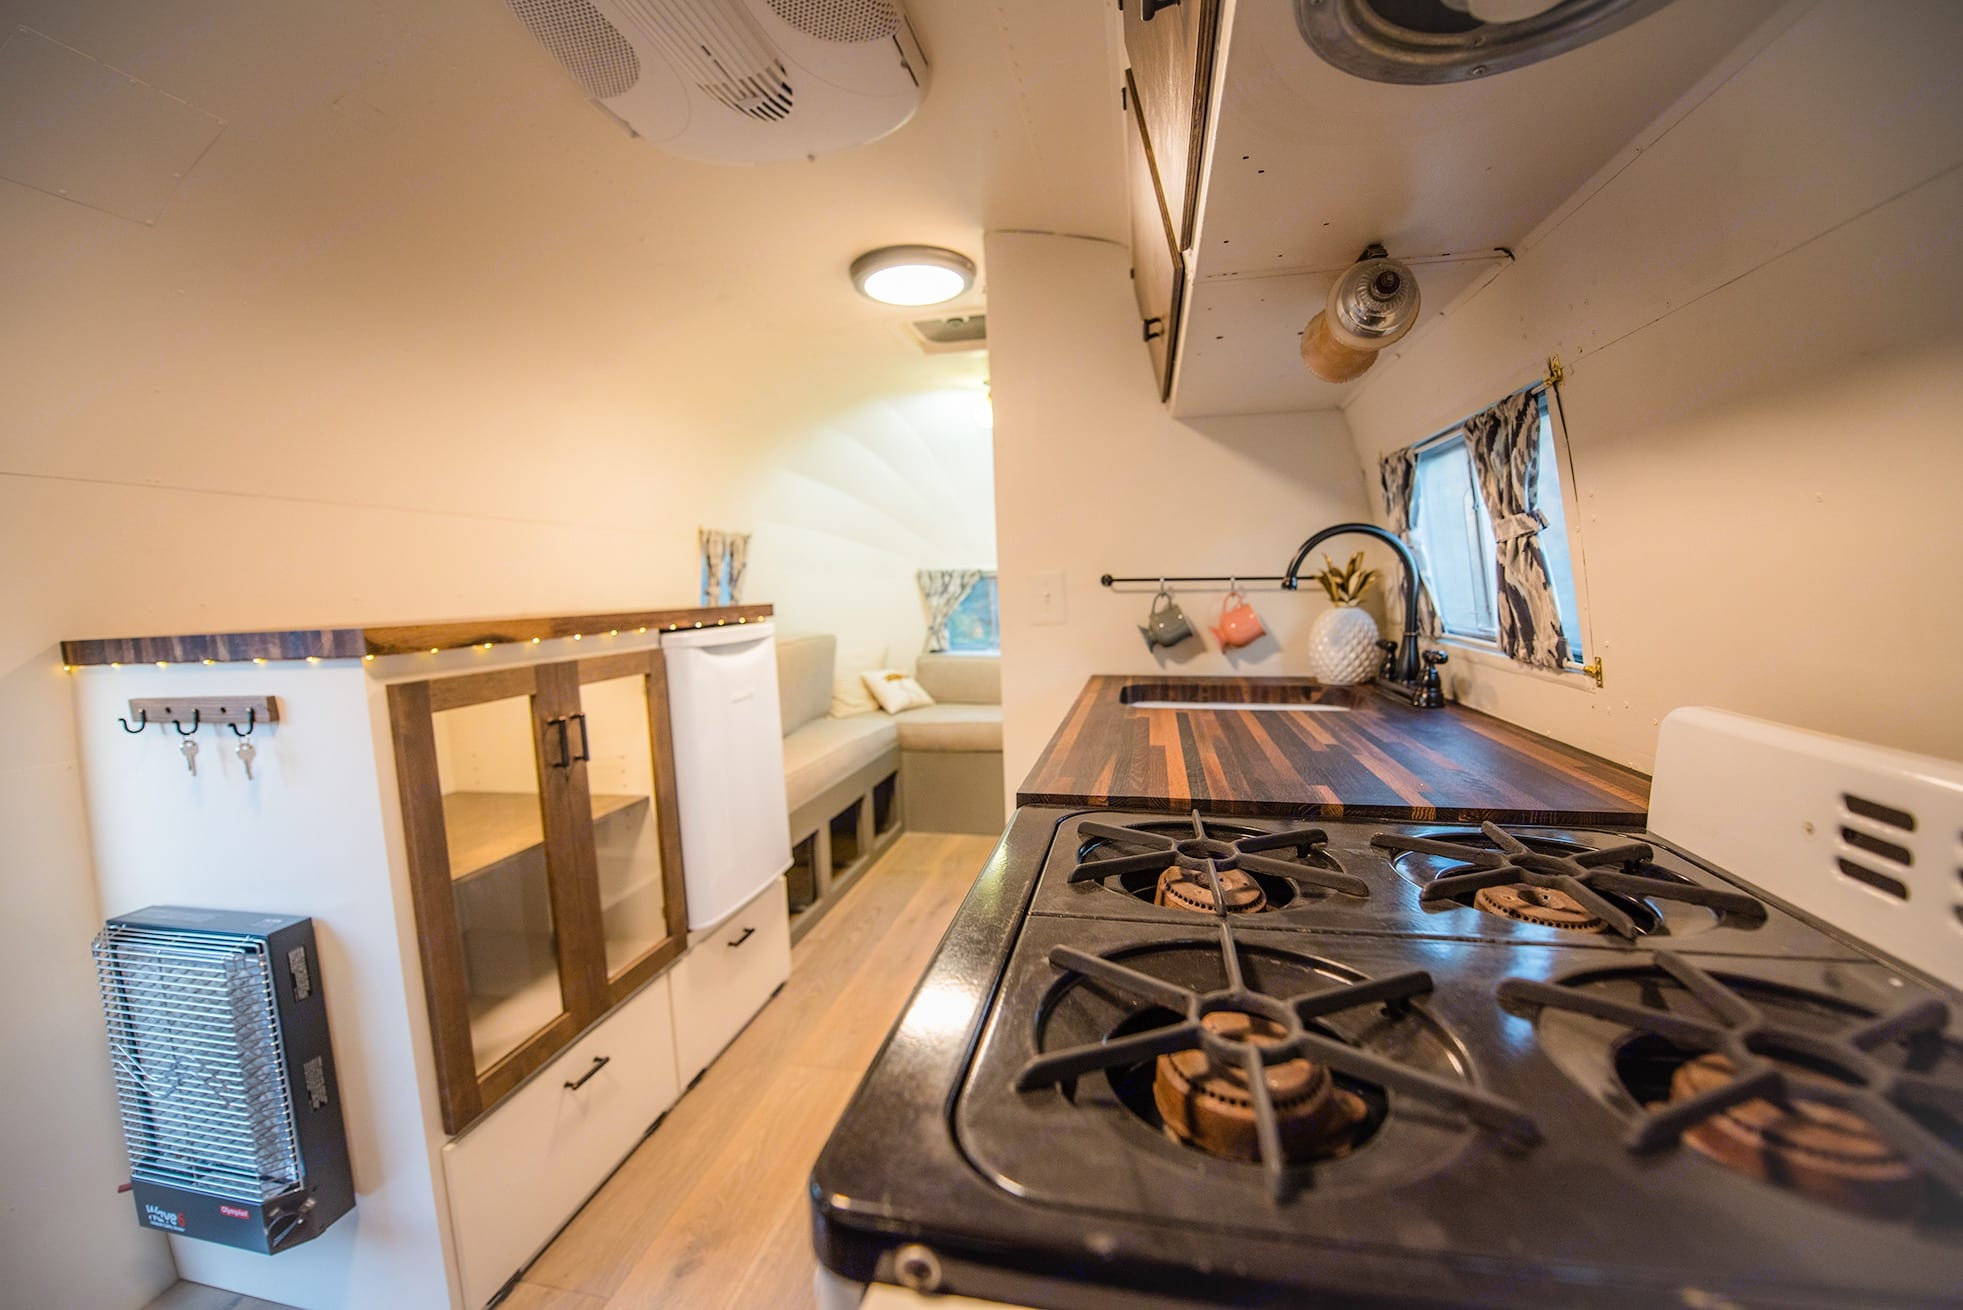 Looking across the interior, you will see the original stove. Airstream Flying Cloud 1954